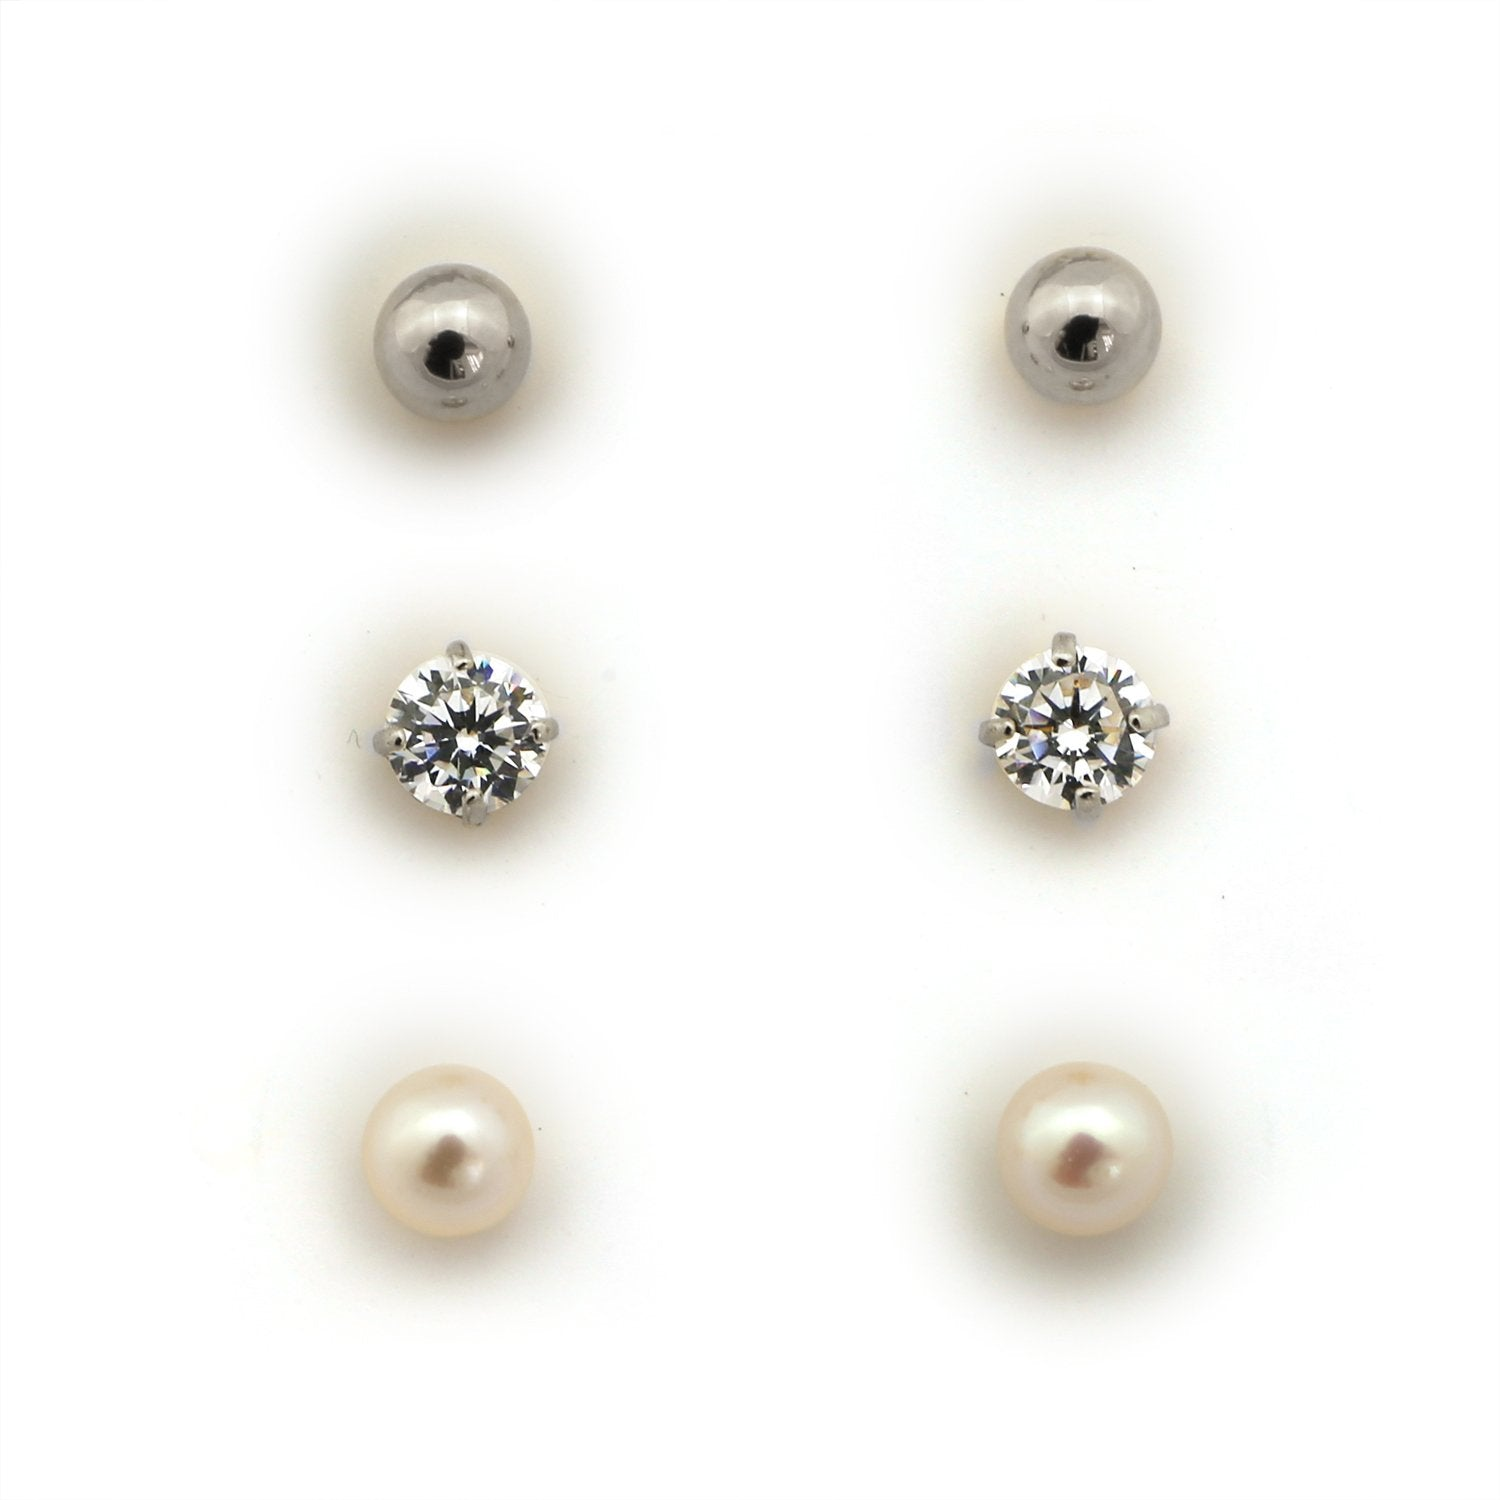 14k Gold 4mm Cubic Zirconia, White Freshwater Cultured Pearl, and Ball Stud Earrings Set